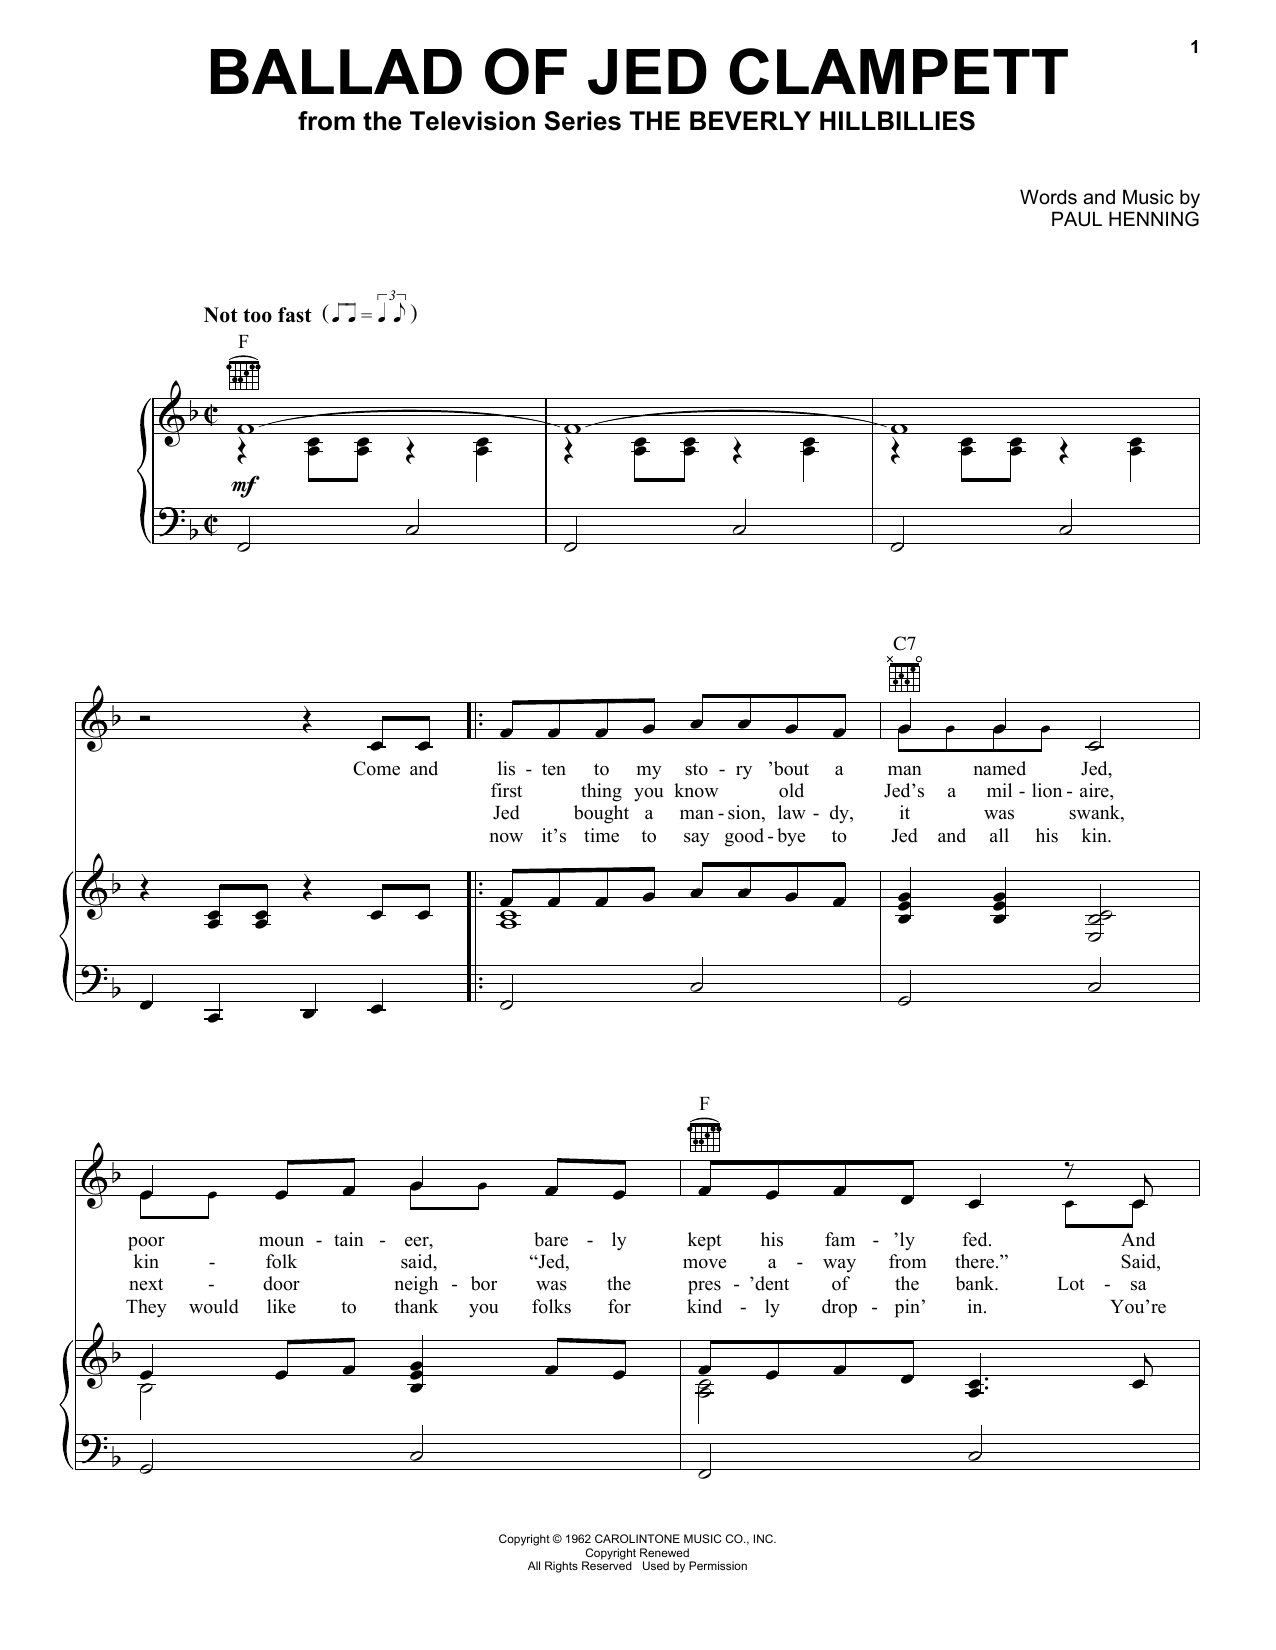 Ballad Of Jed Clampett (from The Beverly Hillbillies) Sheet Music